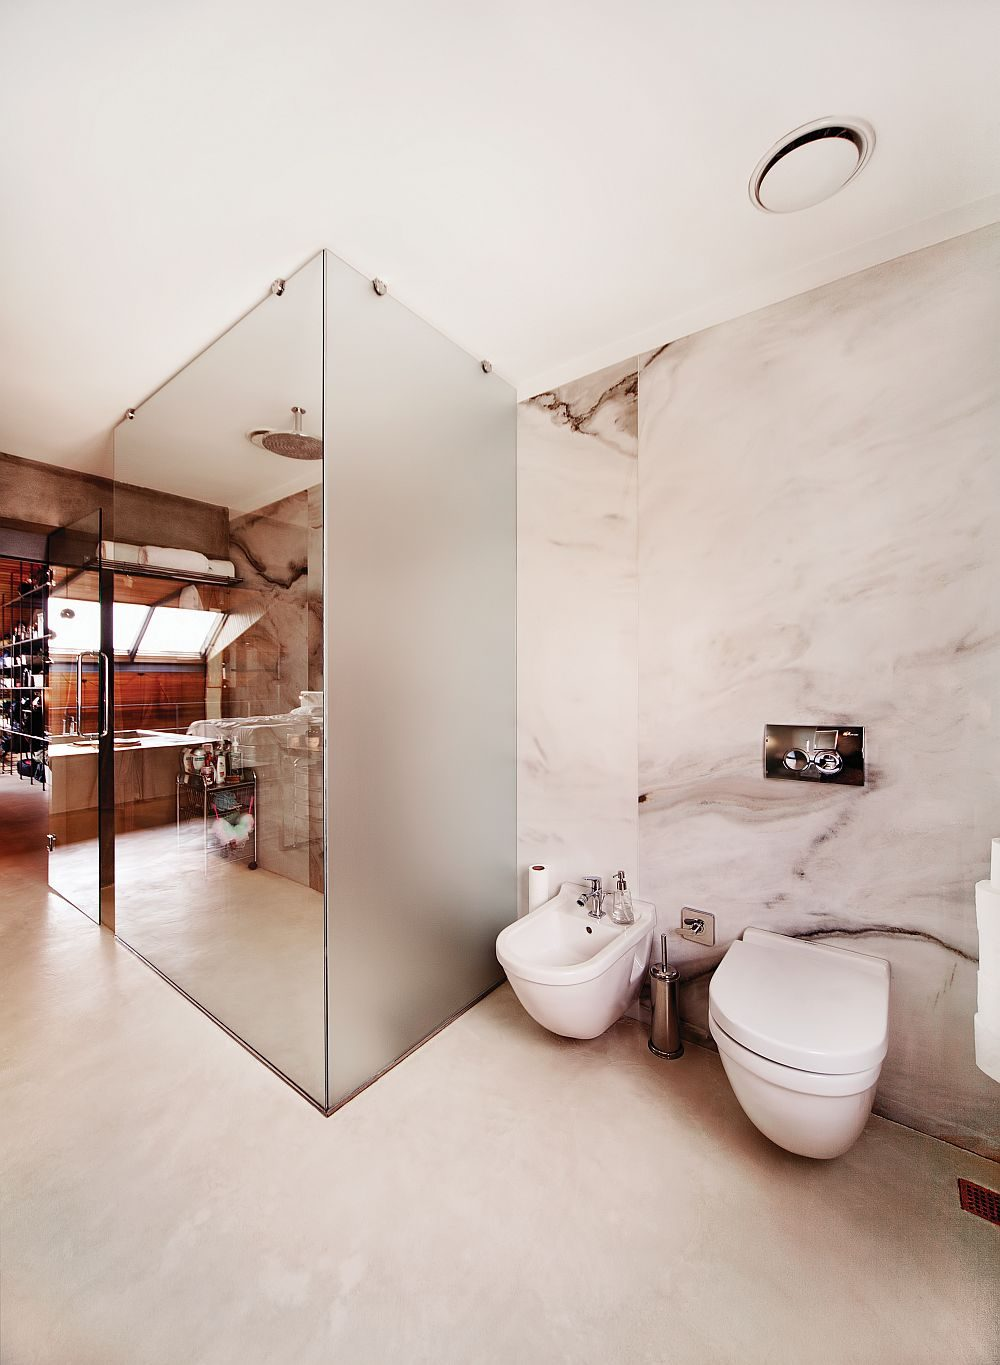 ngam can ho penthouse co thiet ke noi that doc dao nhat istanbul (15)